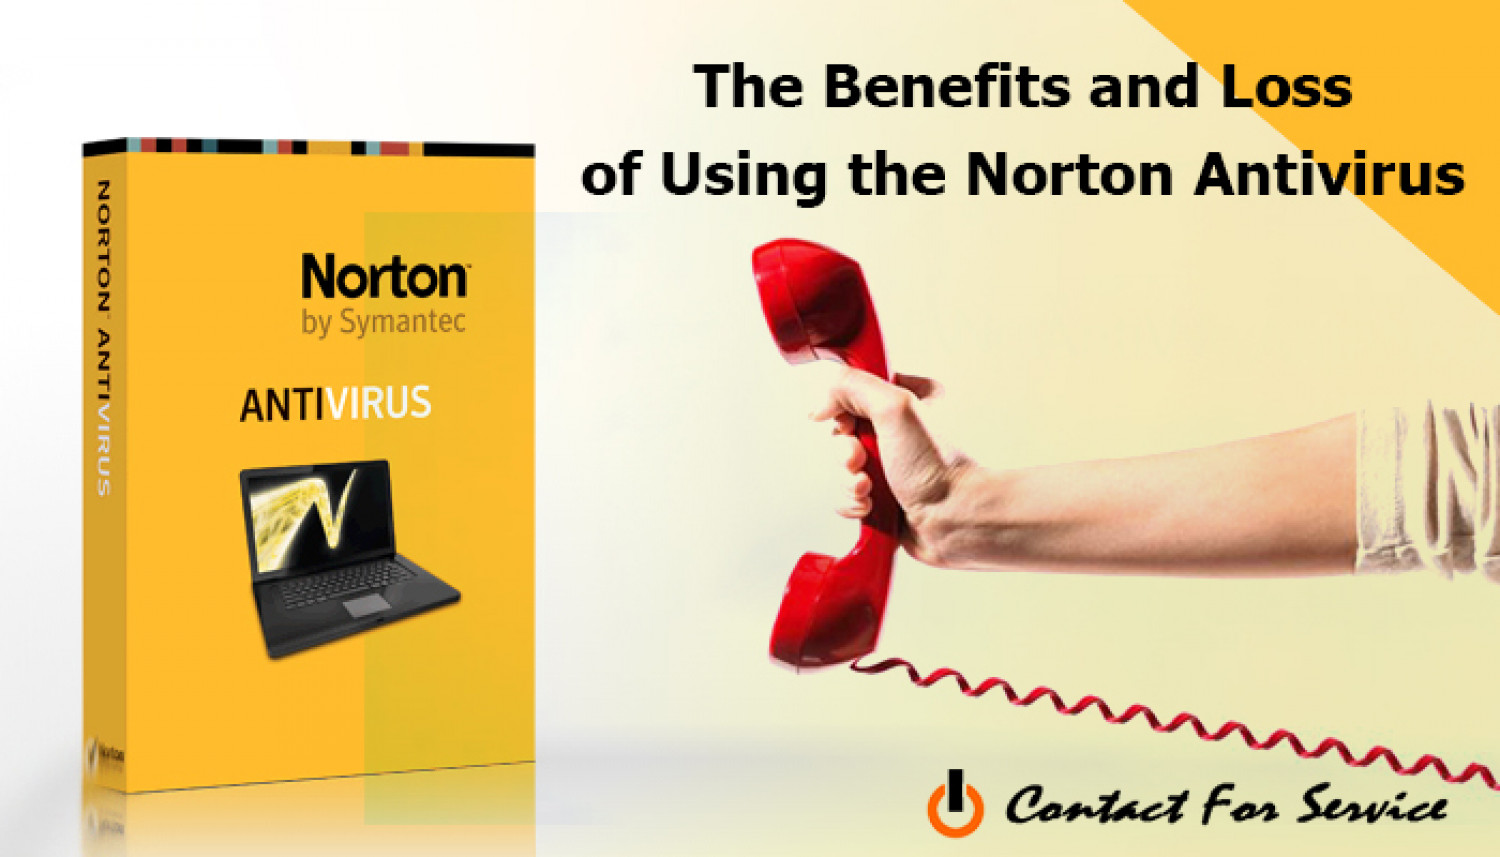 The Benefits and Loss of Using the Norton Antivirus Infographic